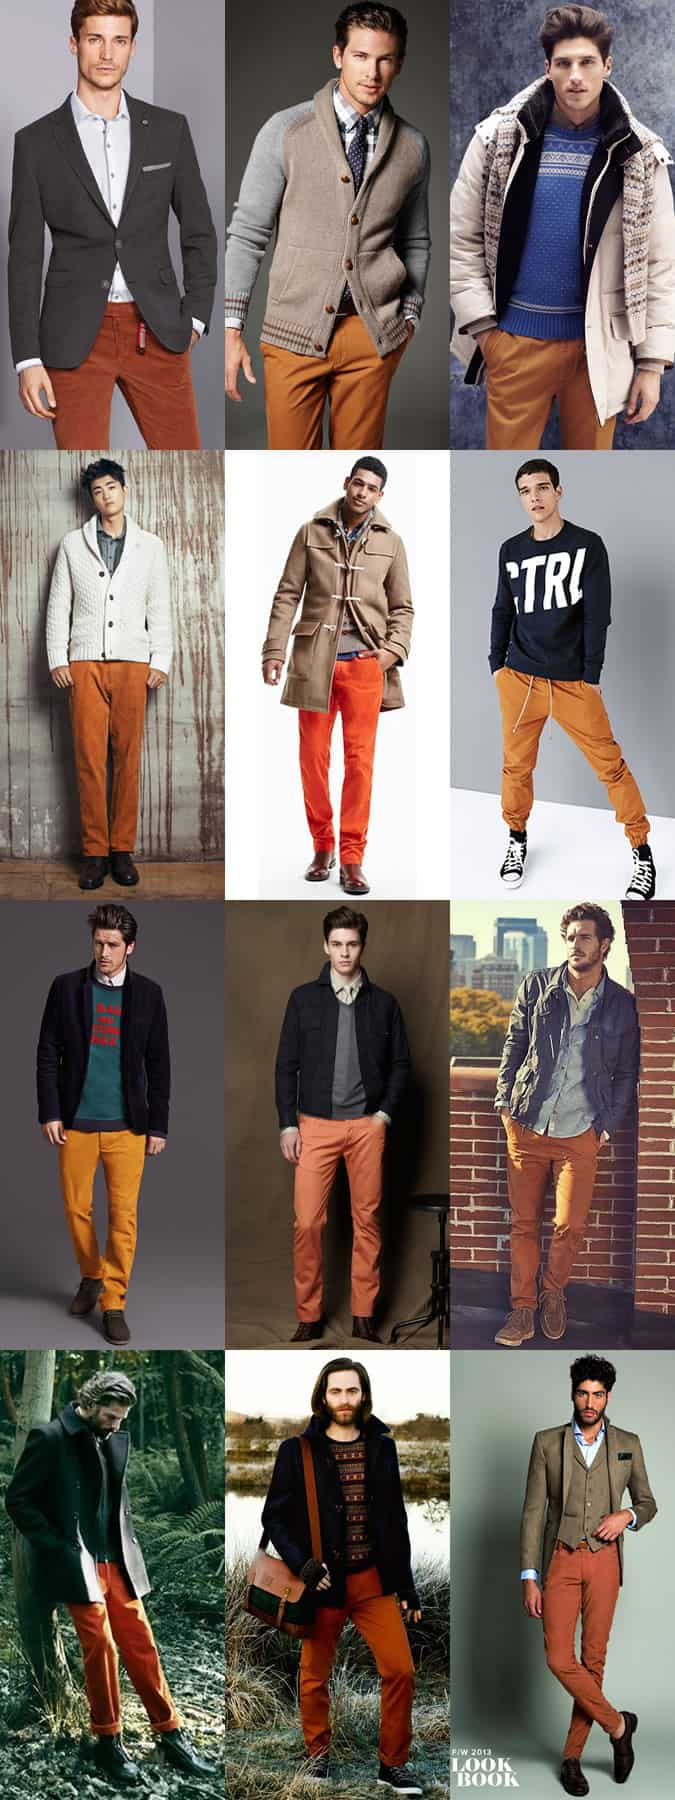 Men's Orange Trousers/Chinos - Outfit Inspiration Lookbook